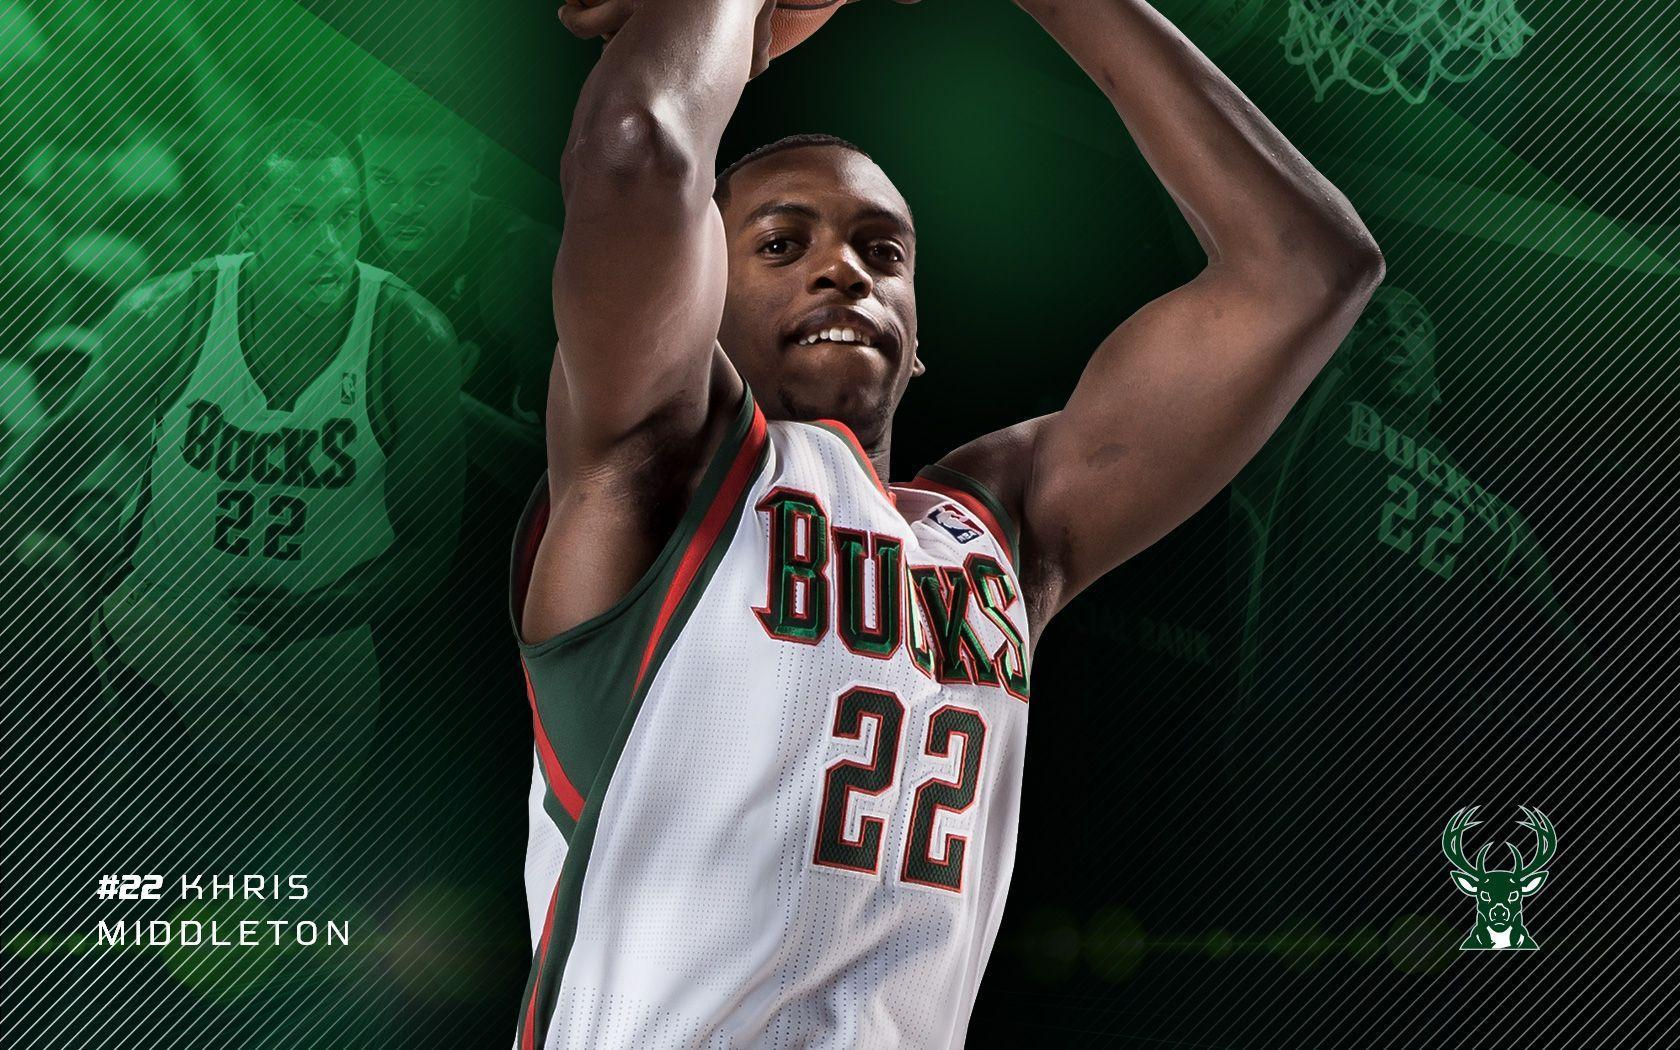 Bucks Backgrounds and Wallpapers 2013